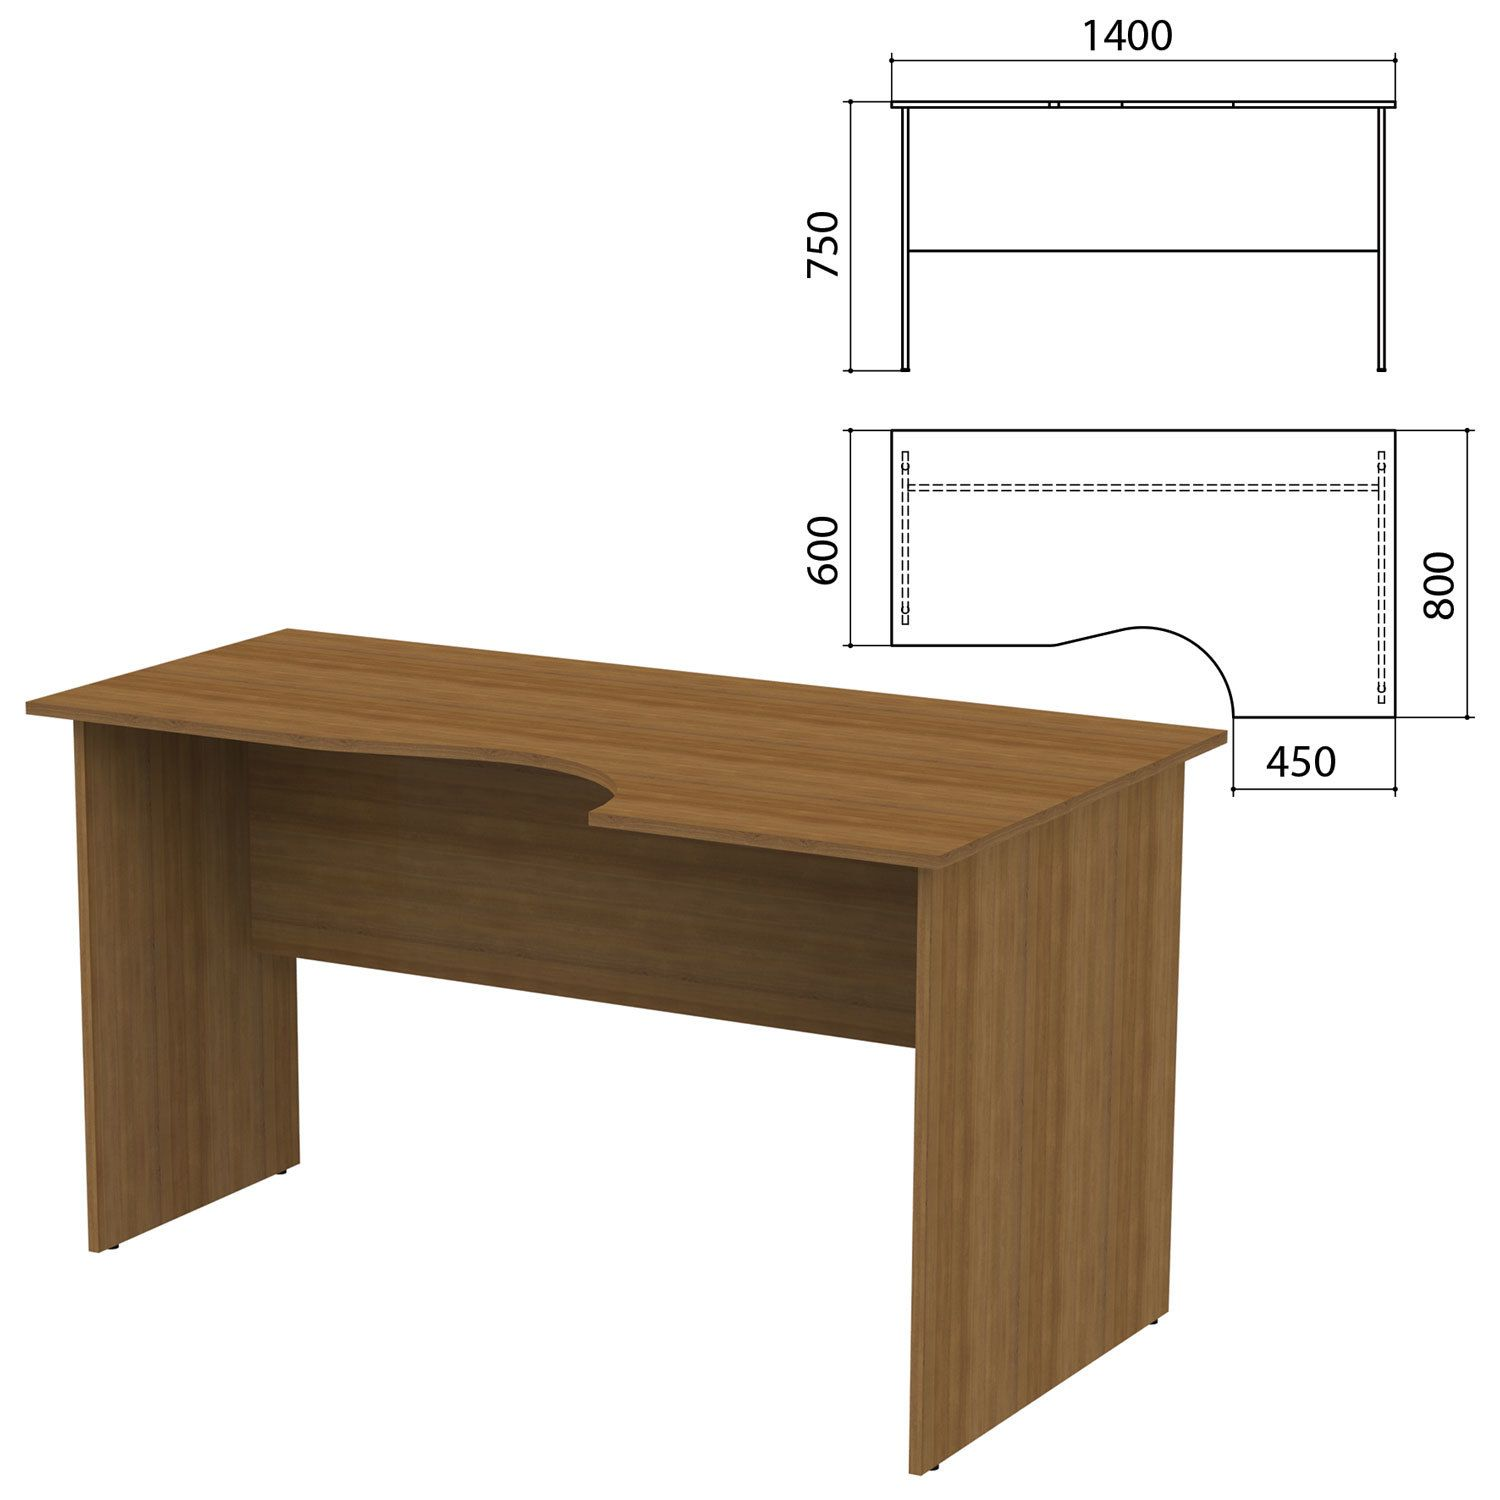 "Table written ergonomic ""Kanz,"" 1400 x800s750 mm, right, walnut color pyramidal"